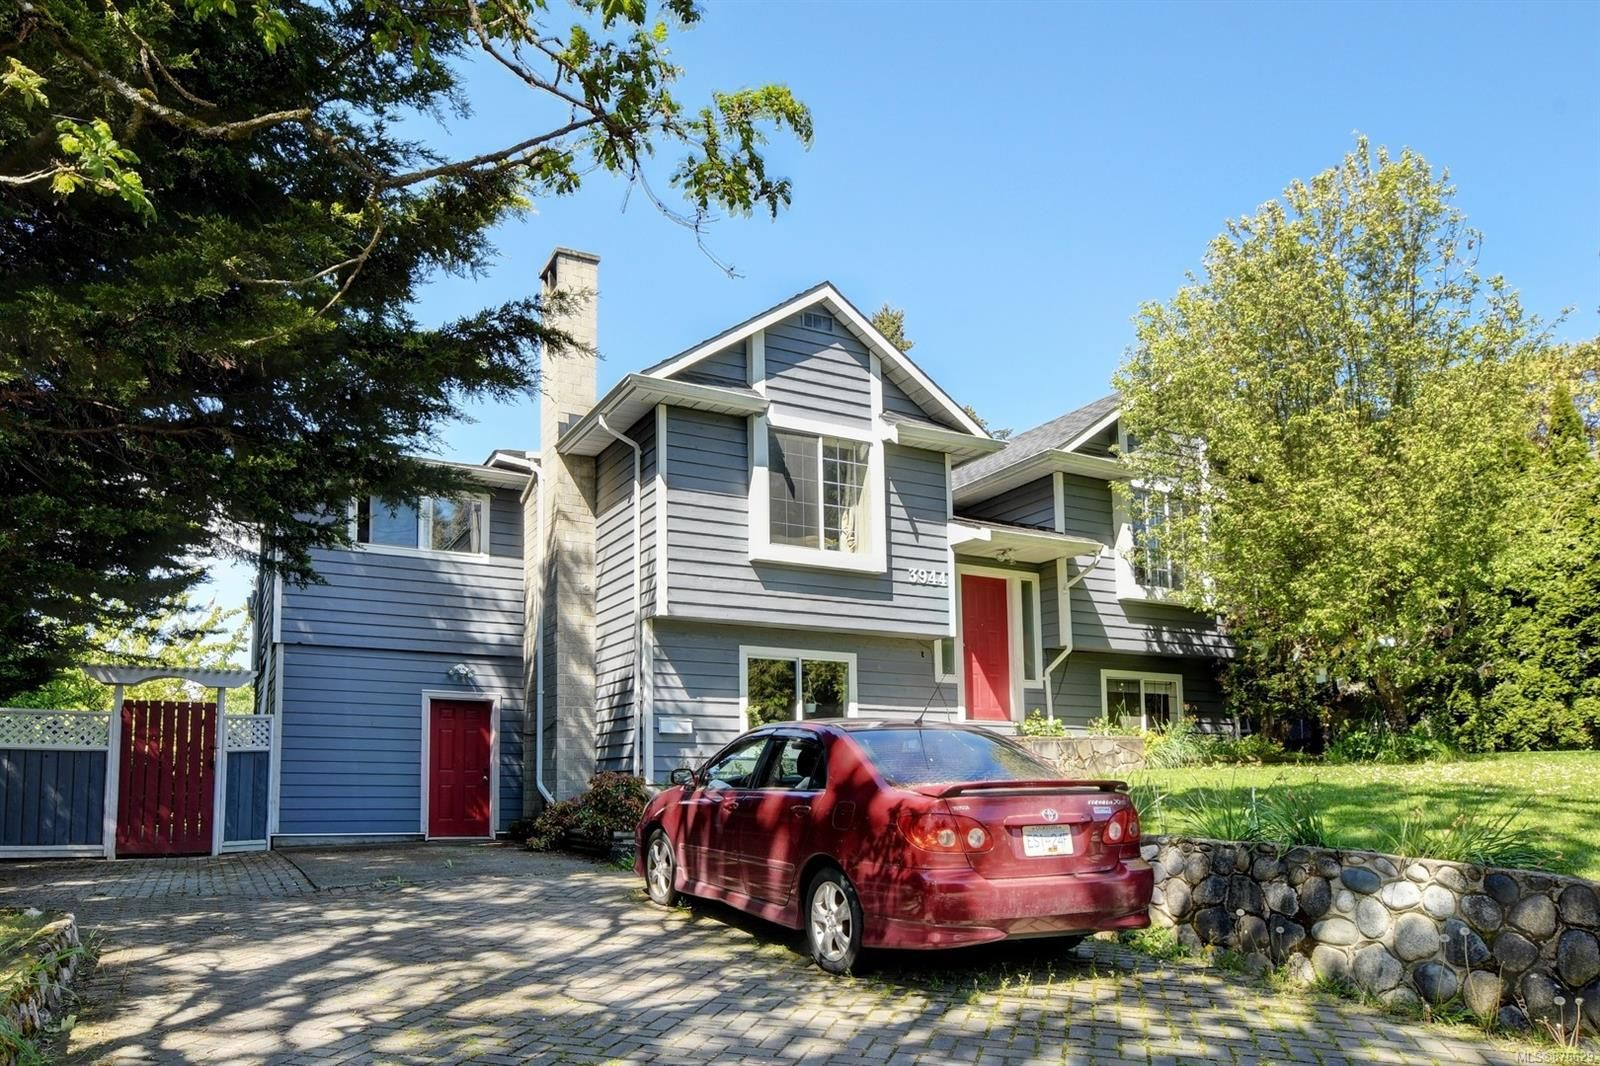 Main Photo: 3944 Rainbow St in : SE Swan Lake House for sale (Saanich East)  : MLS®# 876629